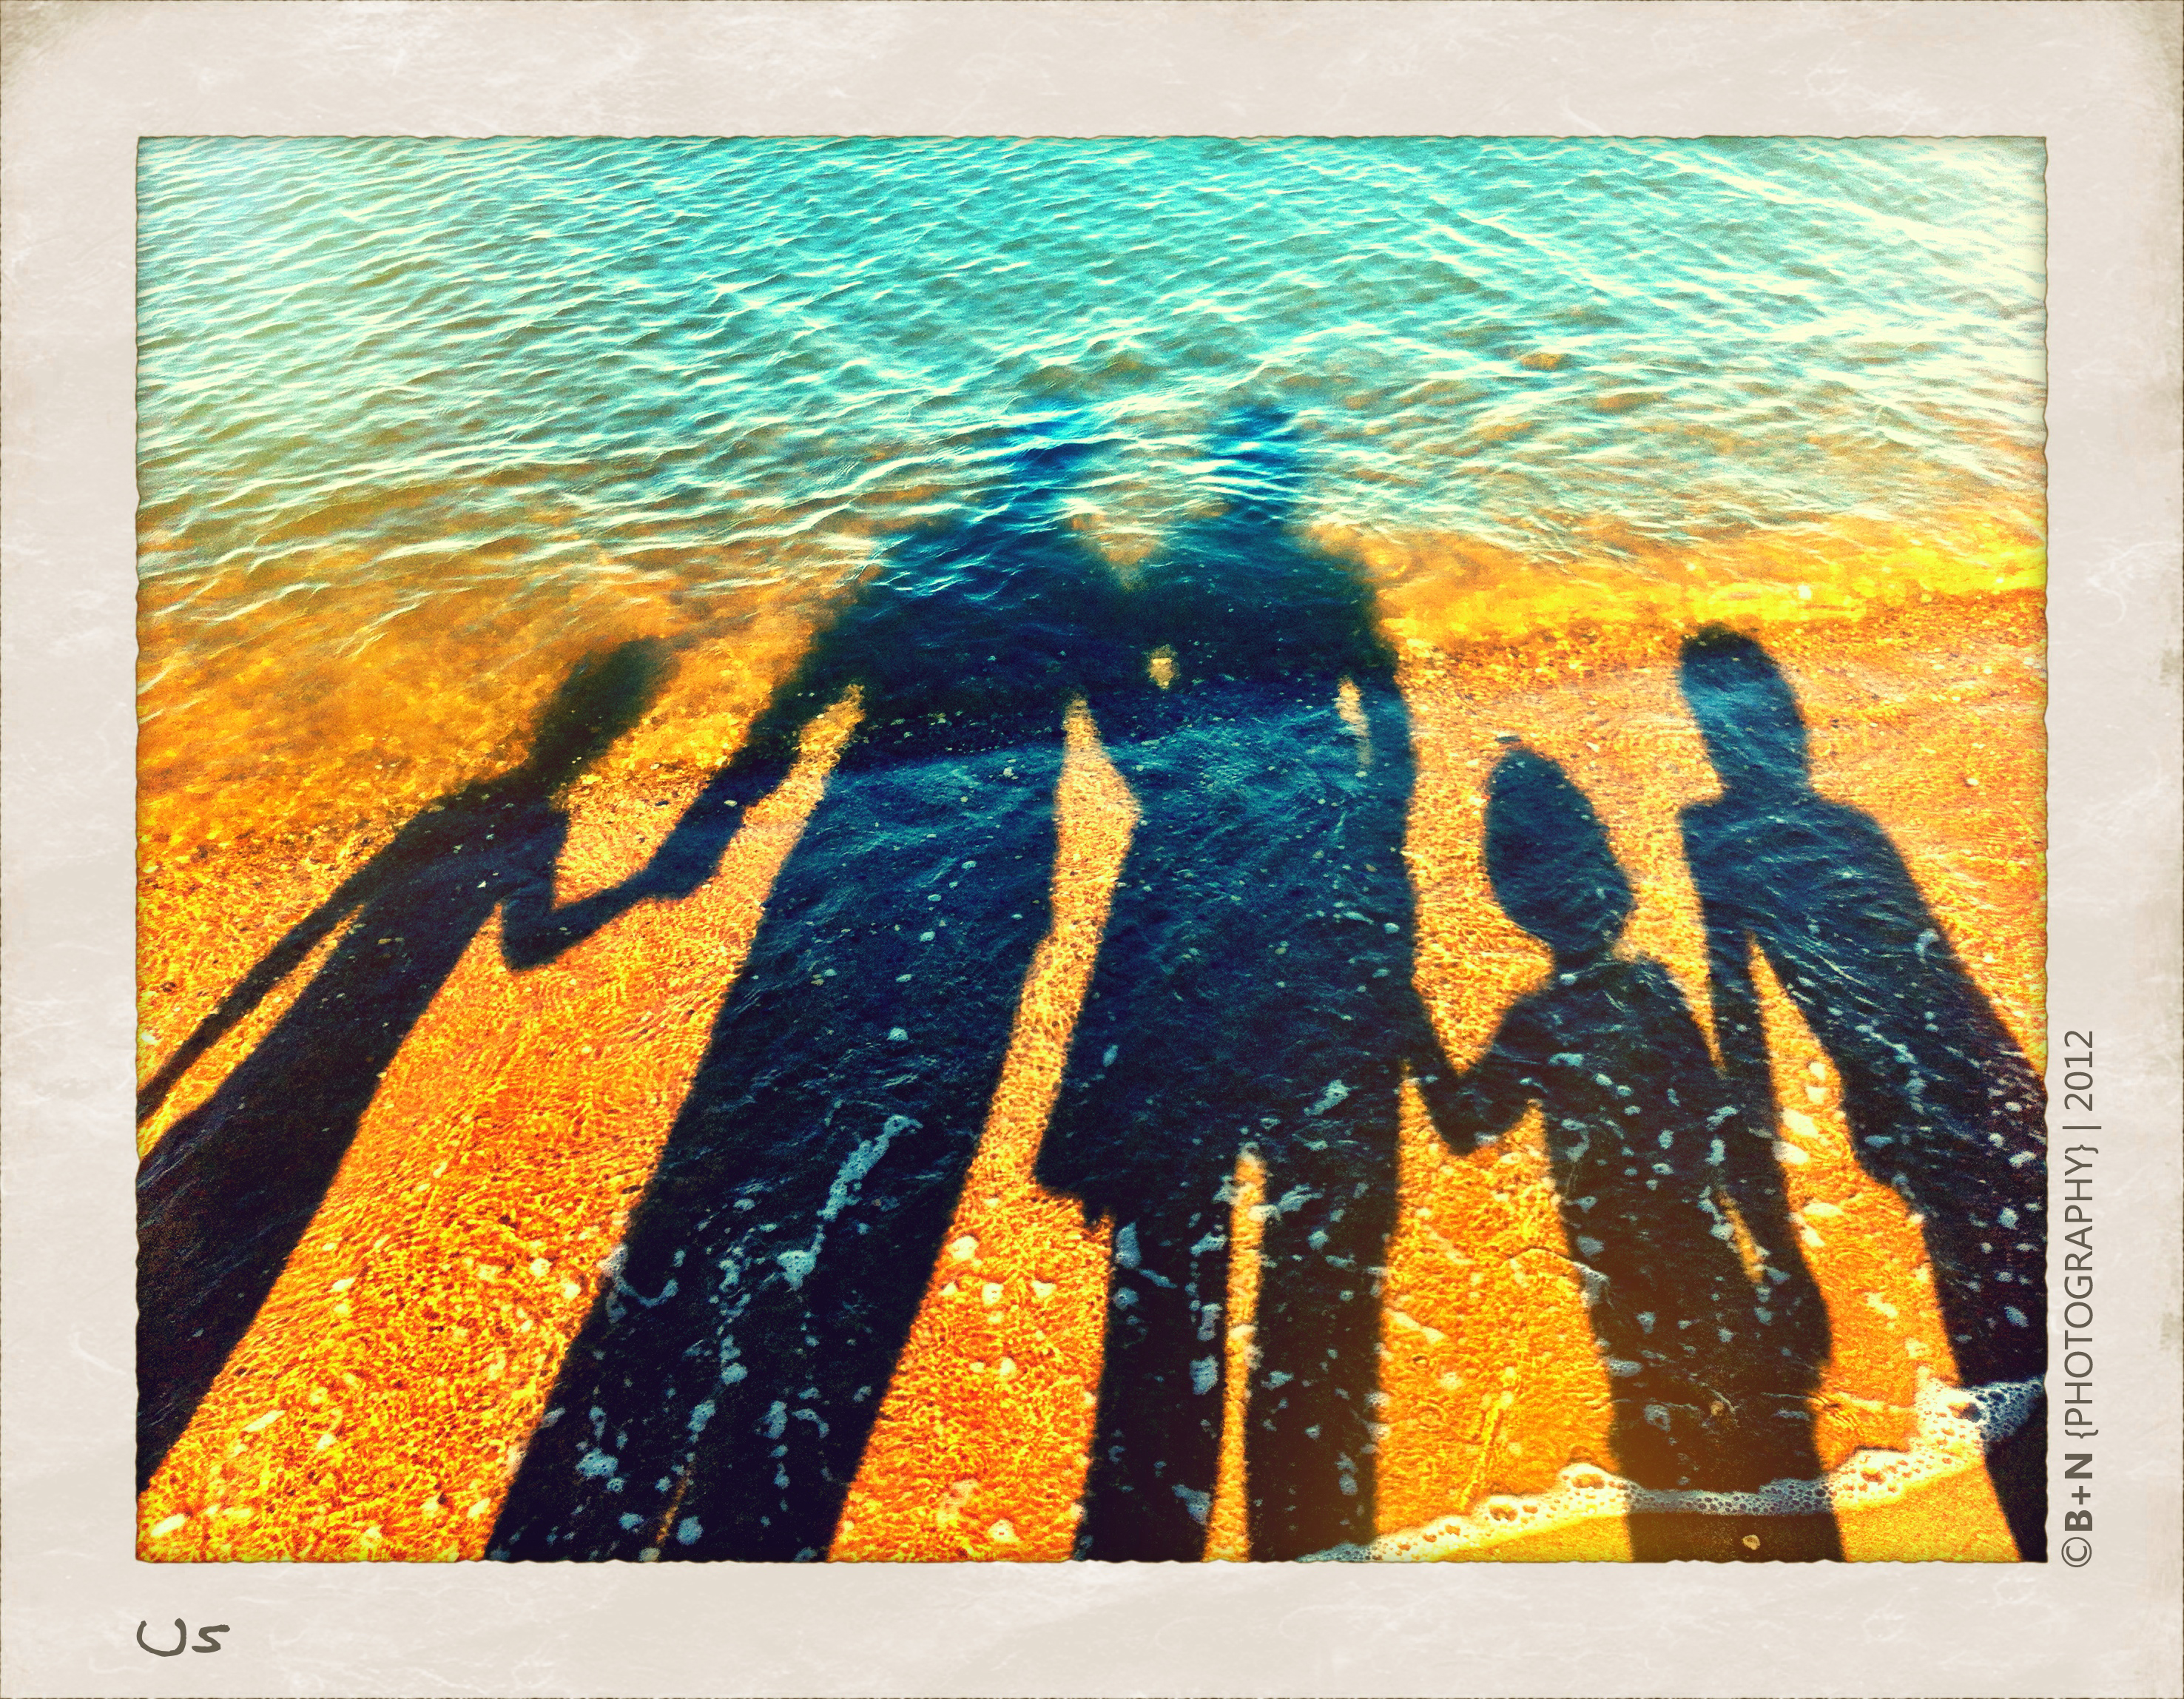 2013-05-09-BEACHSHADOWS.jpg